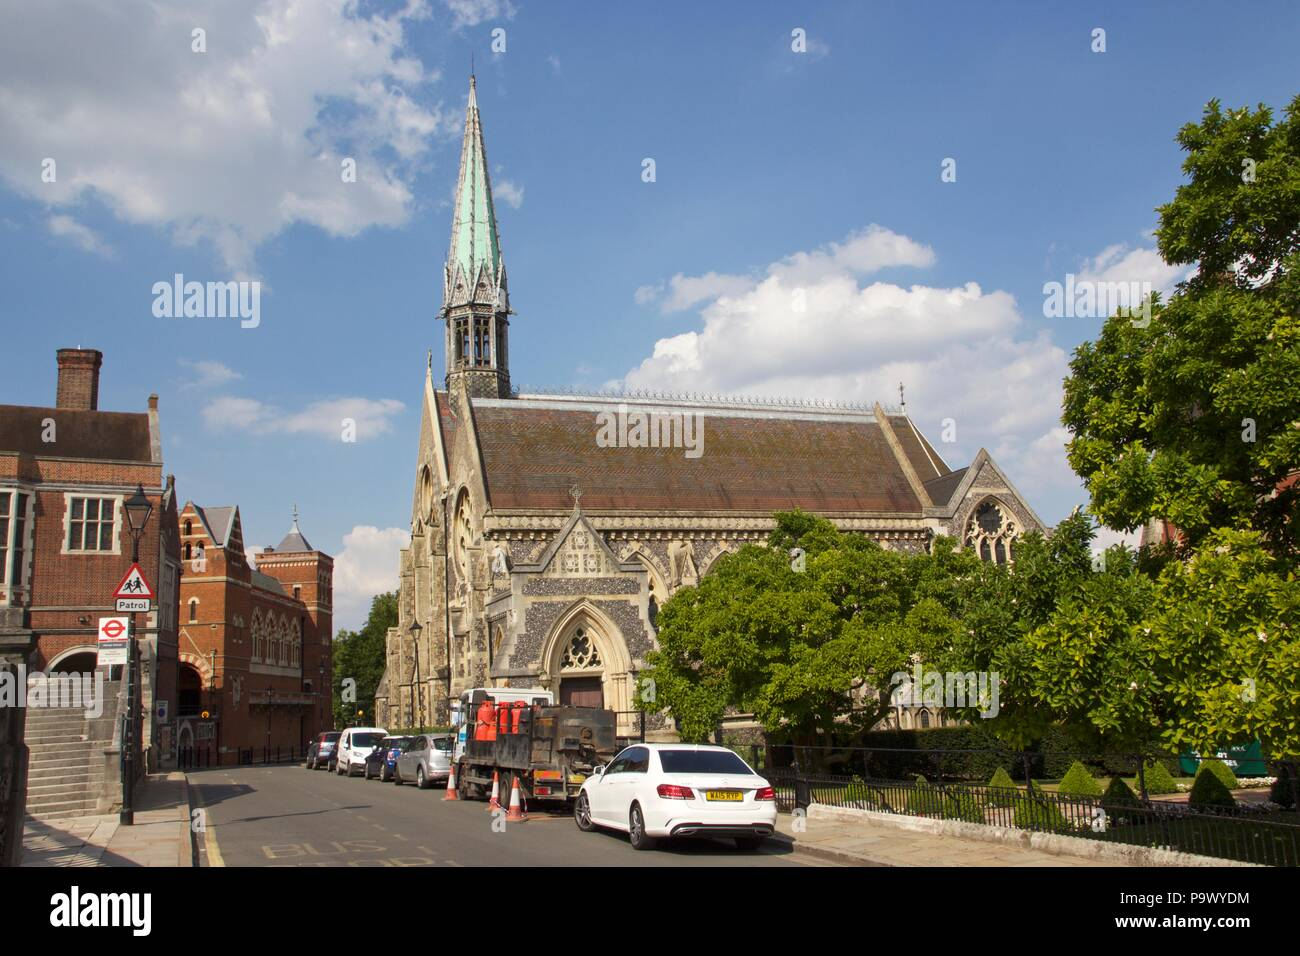 Harrow School Chapel with a green Church spire, which is a grade II listed building, on Harrow-On-The-Hill, London - Stock Image